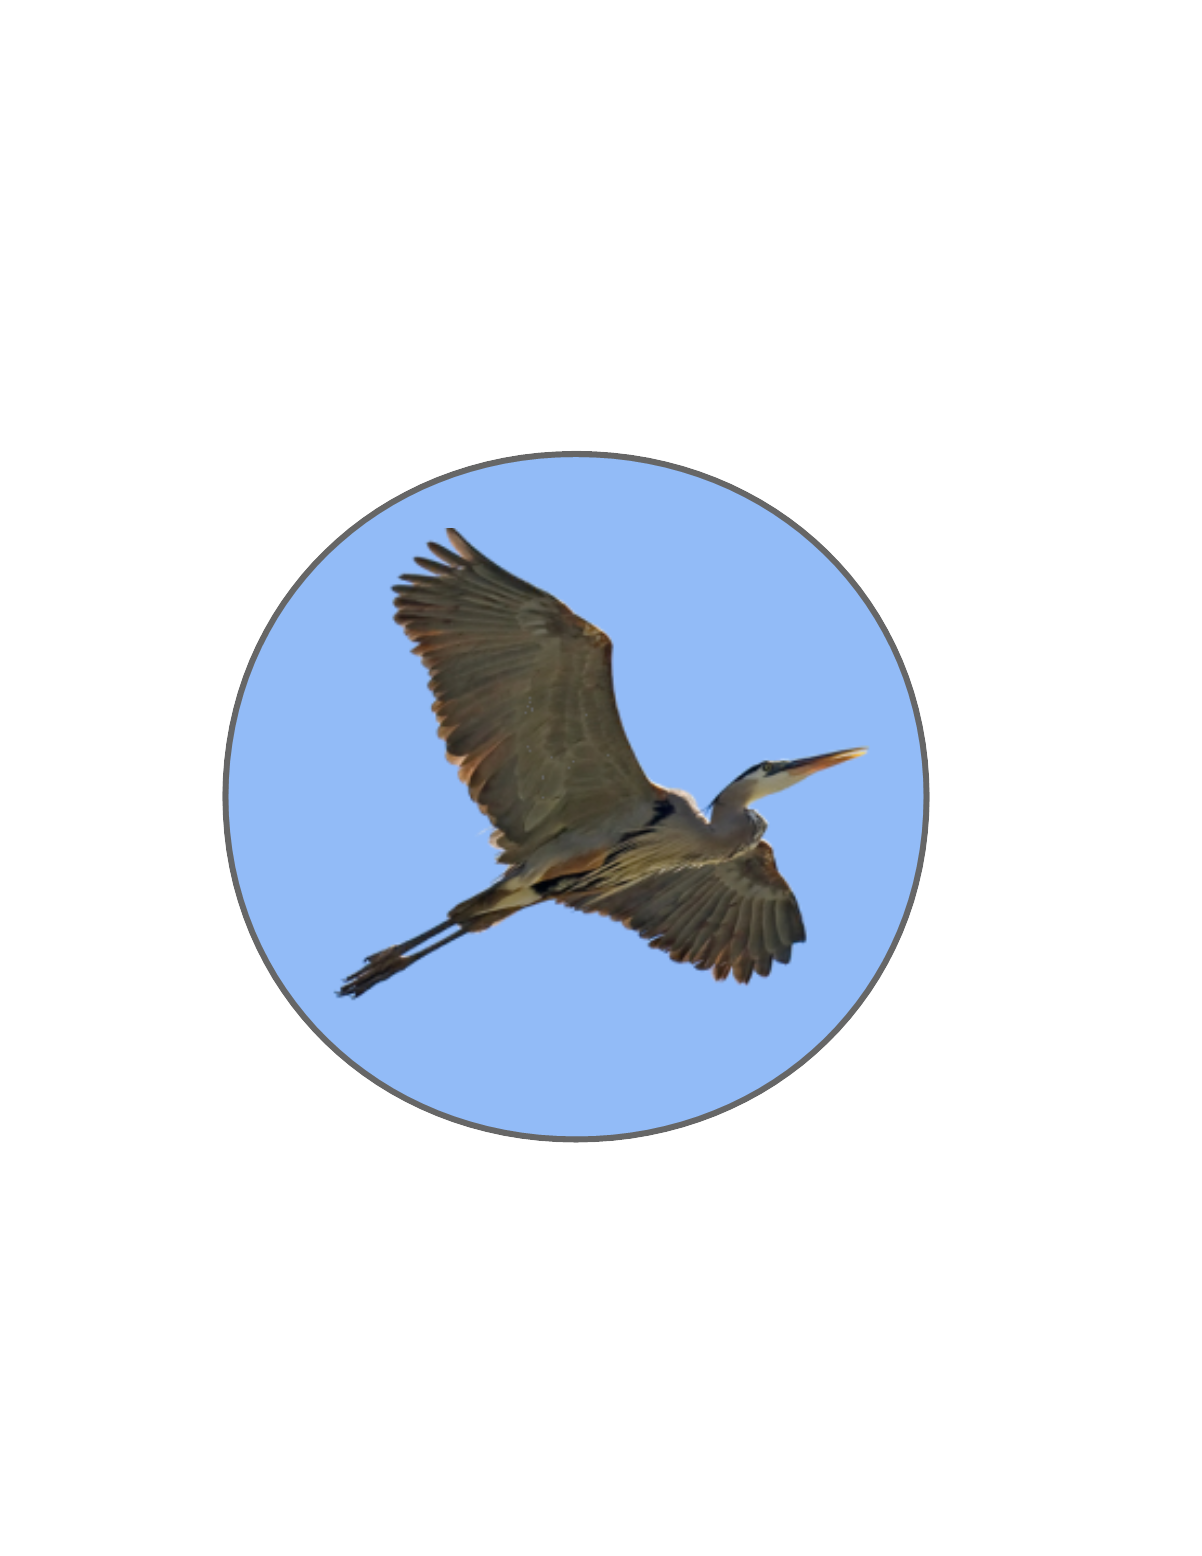 A heron is the logo for this astrologer